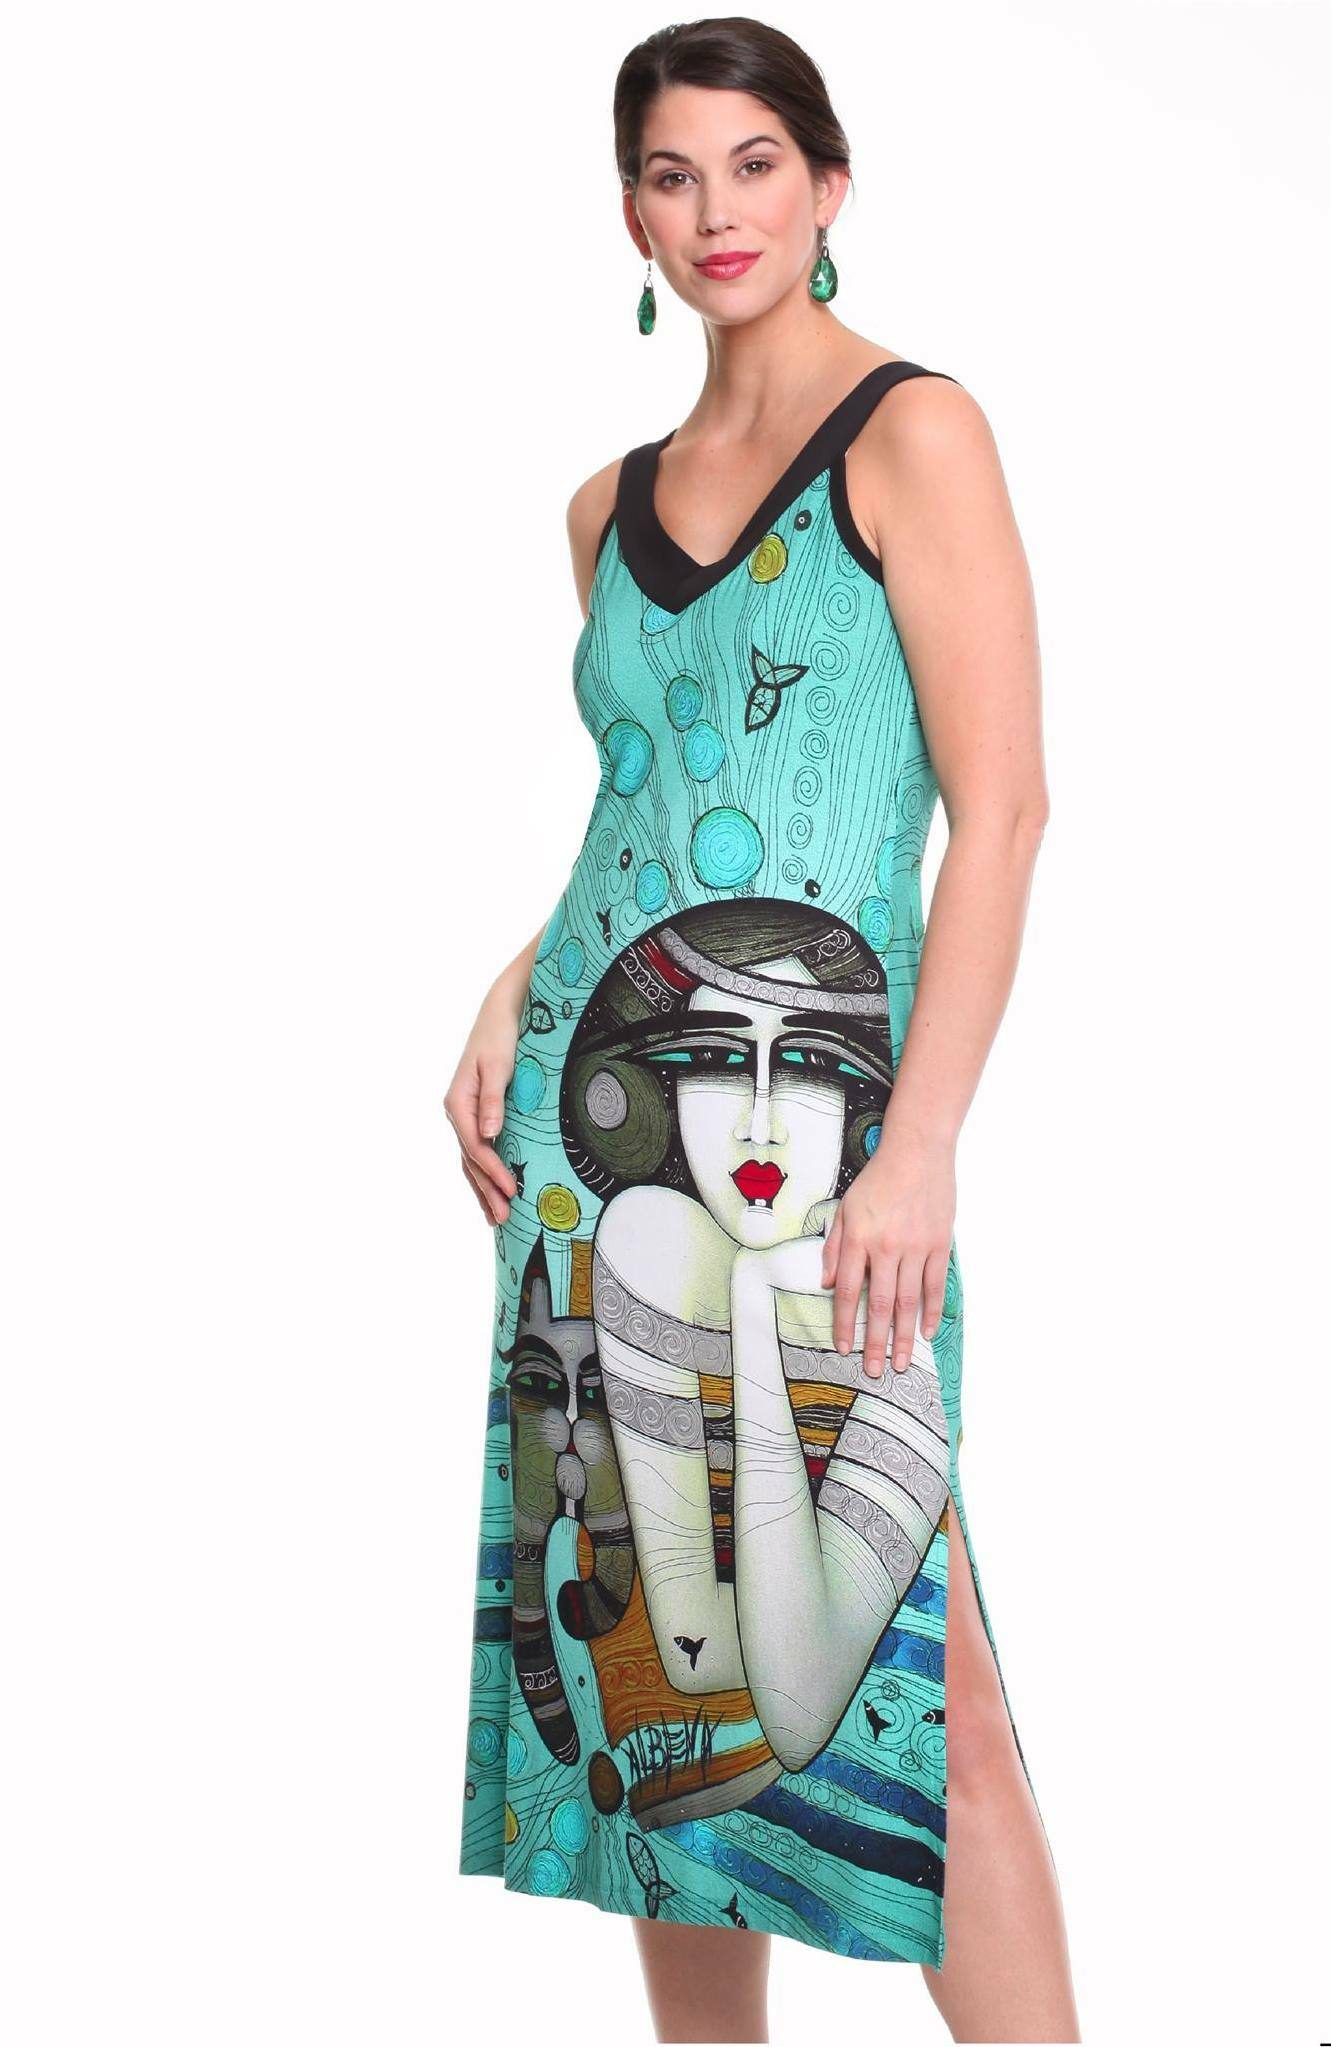 Dolcezza Simply Art: Mermaid Dreamings Flared Art Dress SOLD OUT DOLCEZZA_SIMPLYART_19642_N